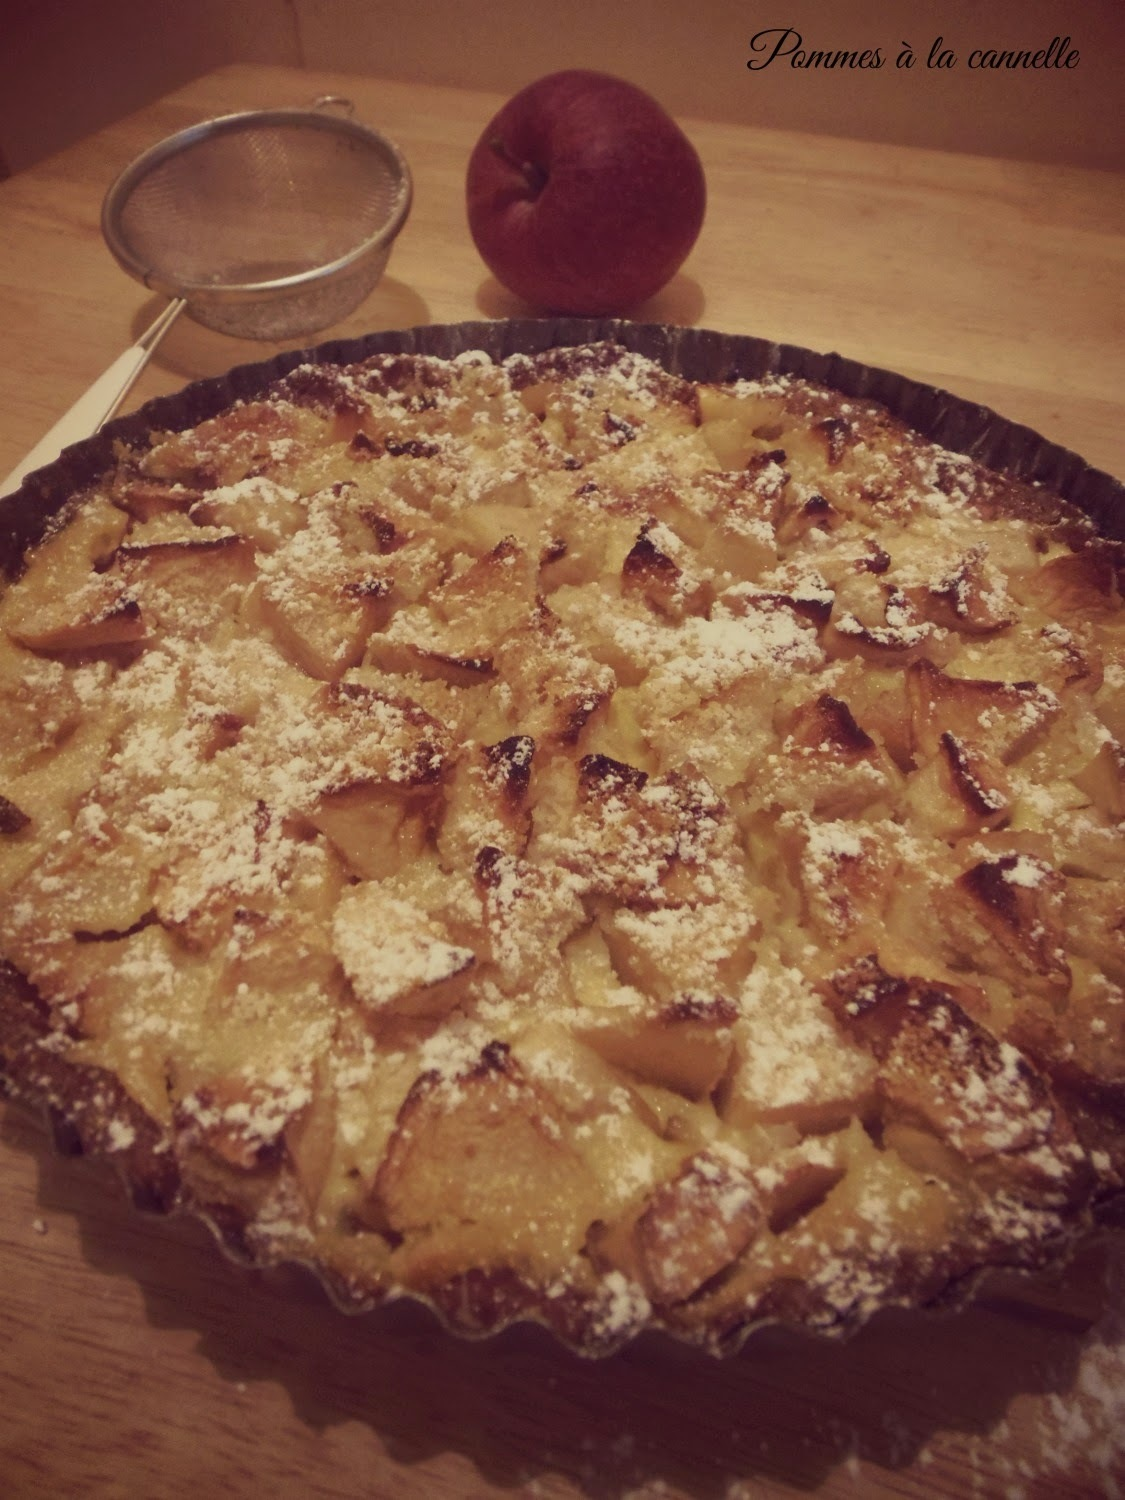 Tarta z jabłkami i Calvadosem/Tart with apples and Calvados